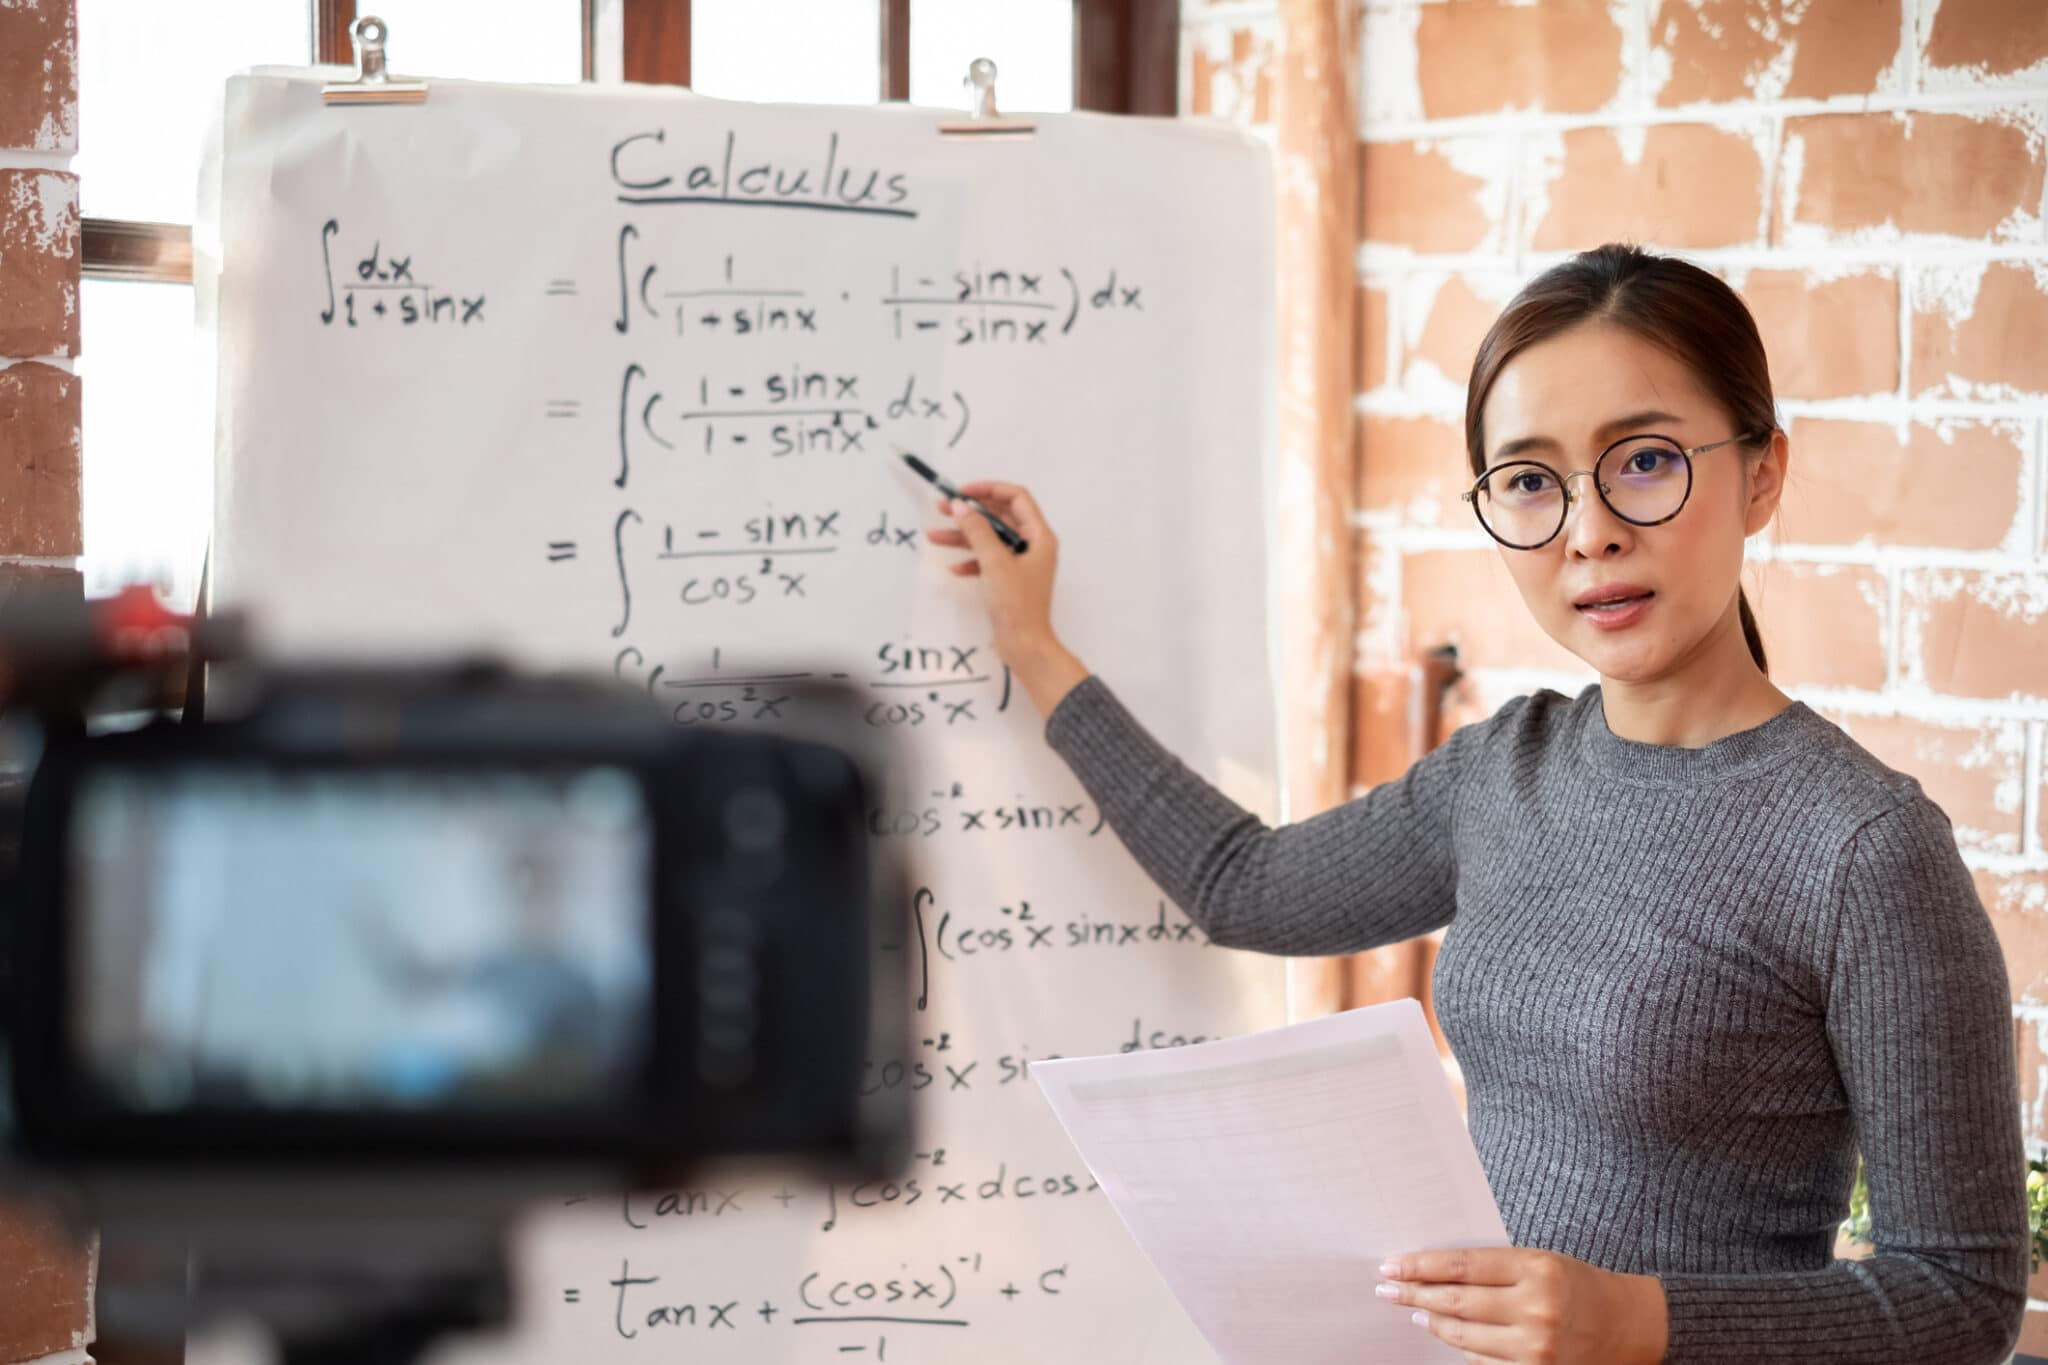 3 Lessons Learned from Teaching a Synchronous Online Class